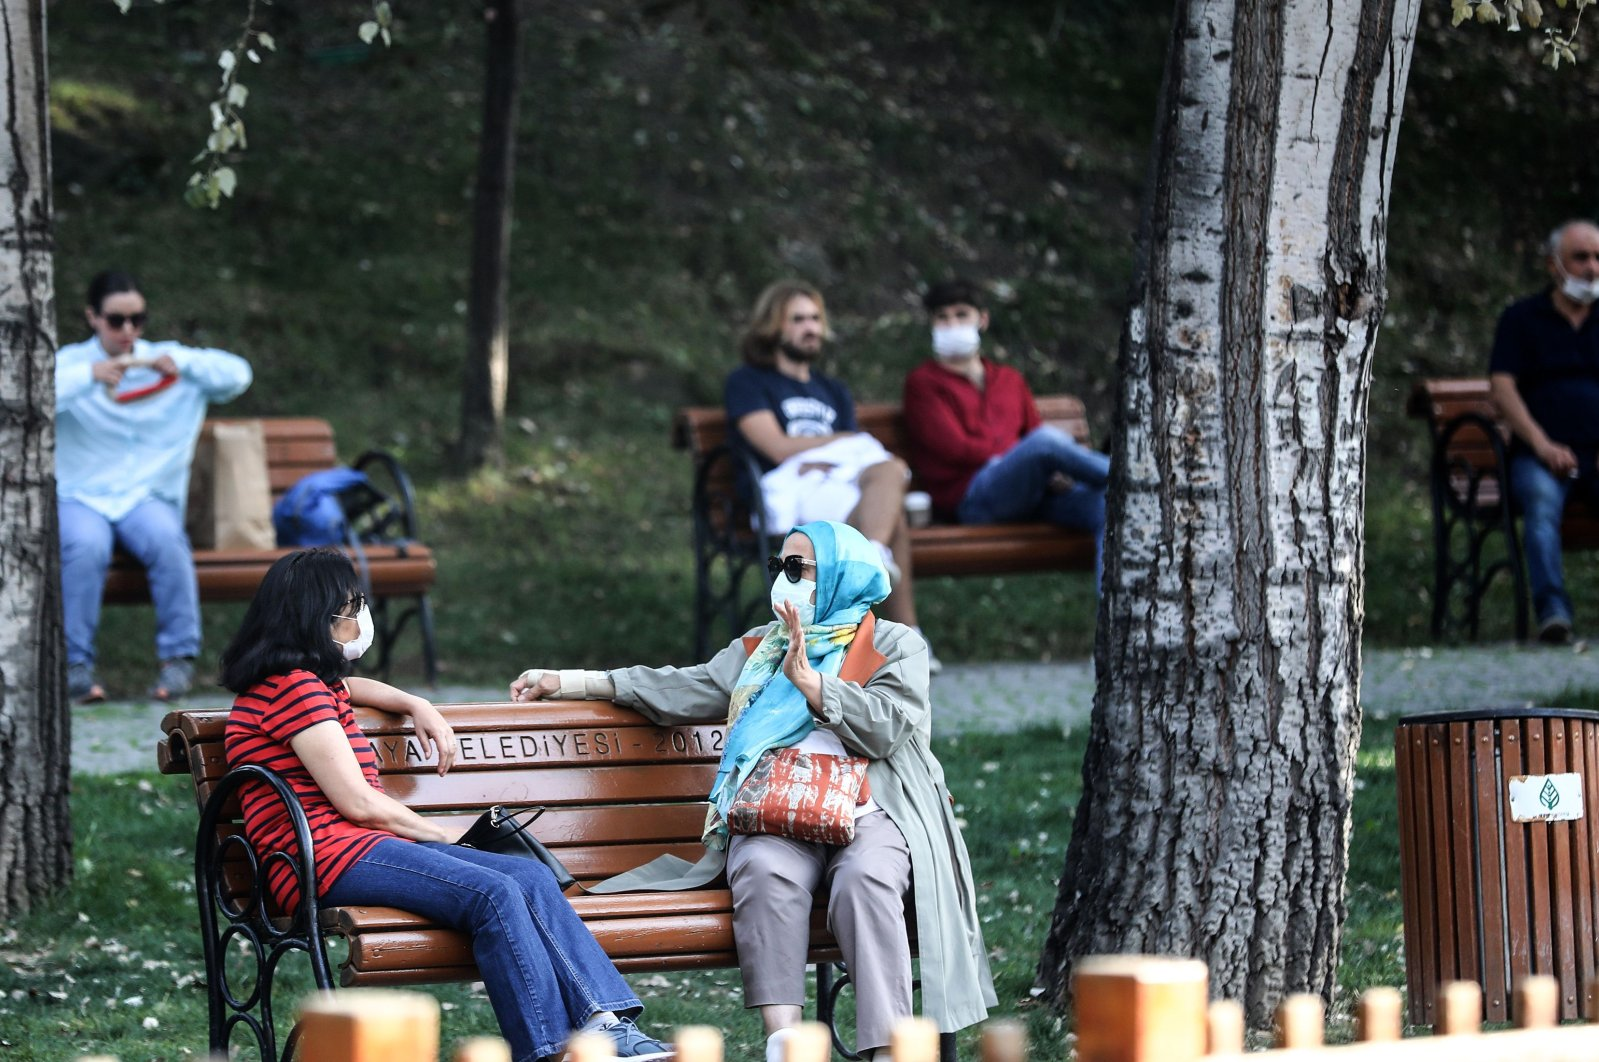 People wearing protective masks sit on benches in the Kuğulu Park in the capital Ankara, Turkey, Oct. 12, 2020. (AFP Photo)